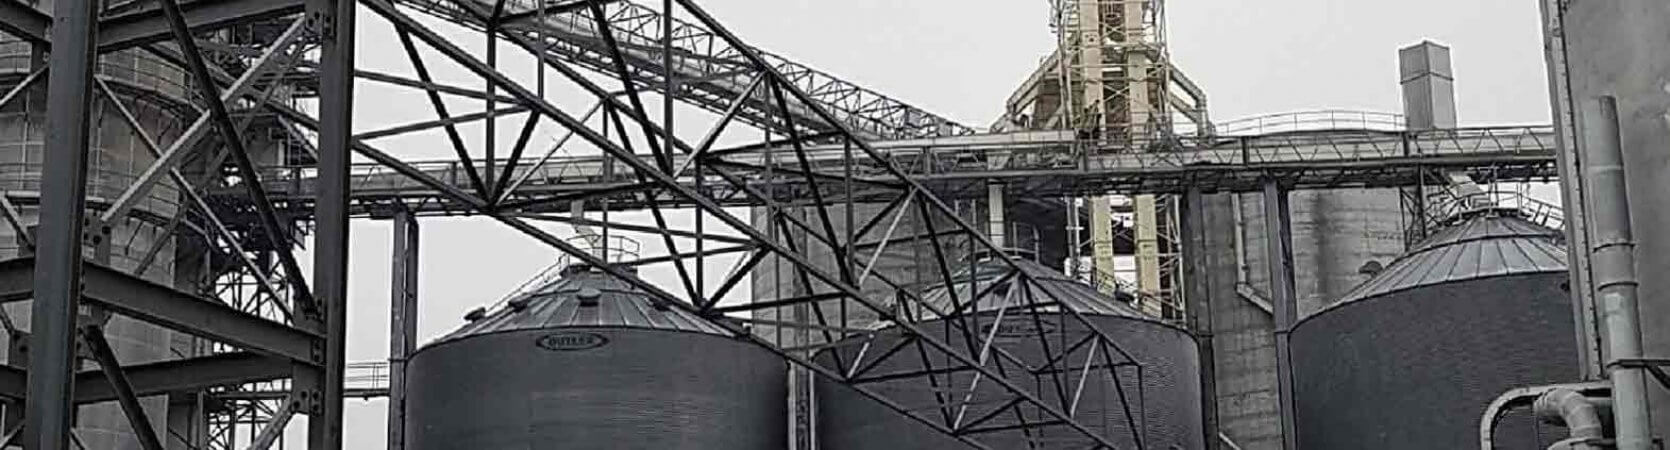 Green Plains Renewable Energy Cable Tray Structure Ethanol Structural Engineering